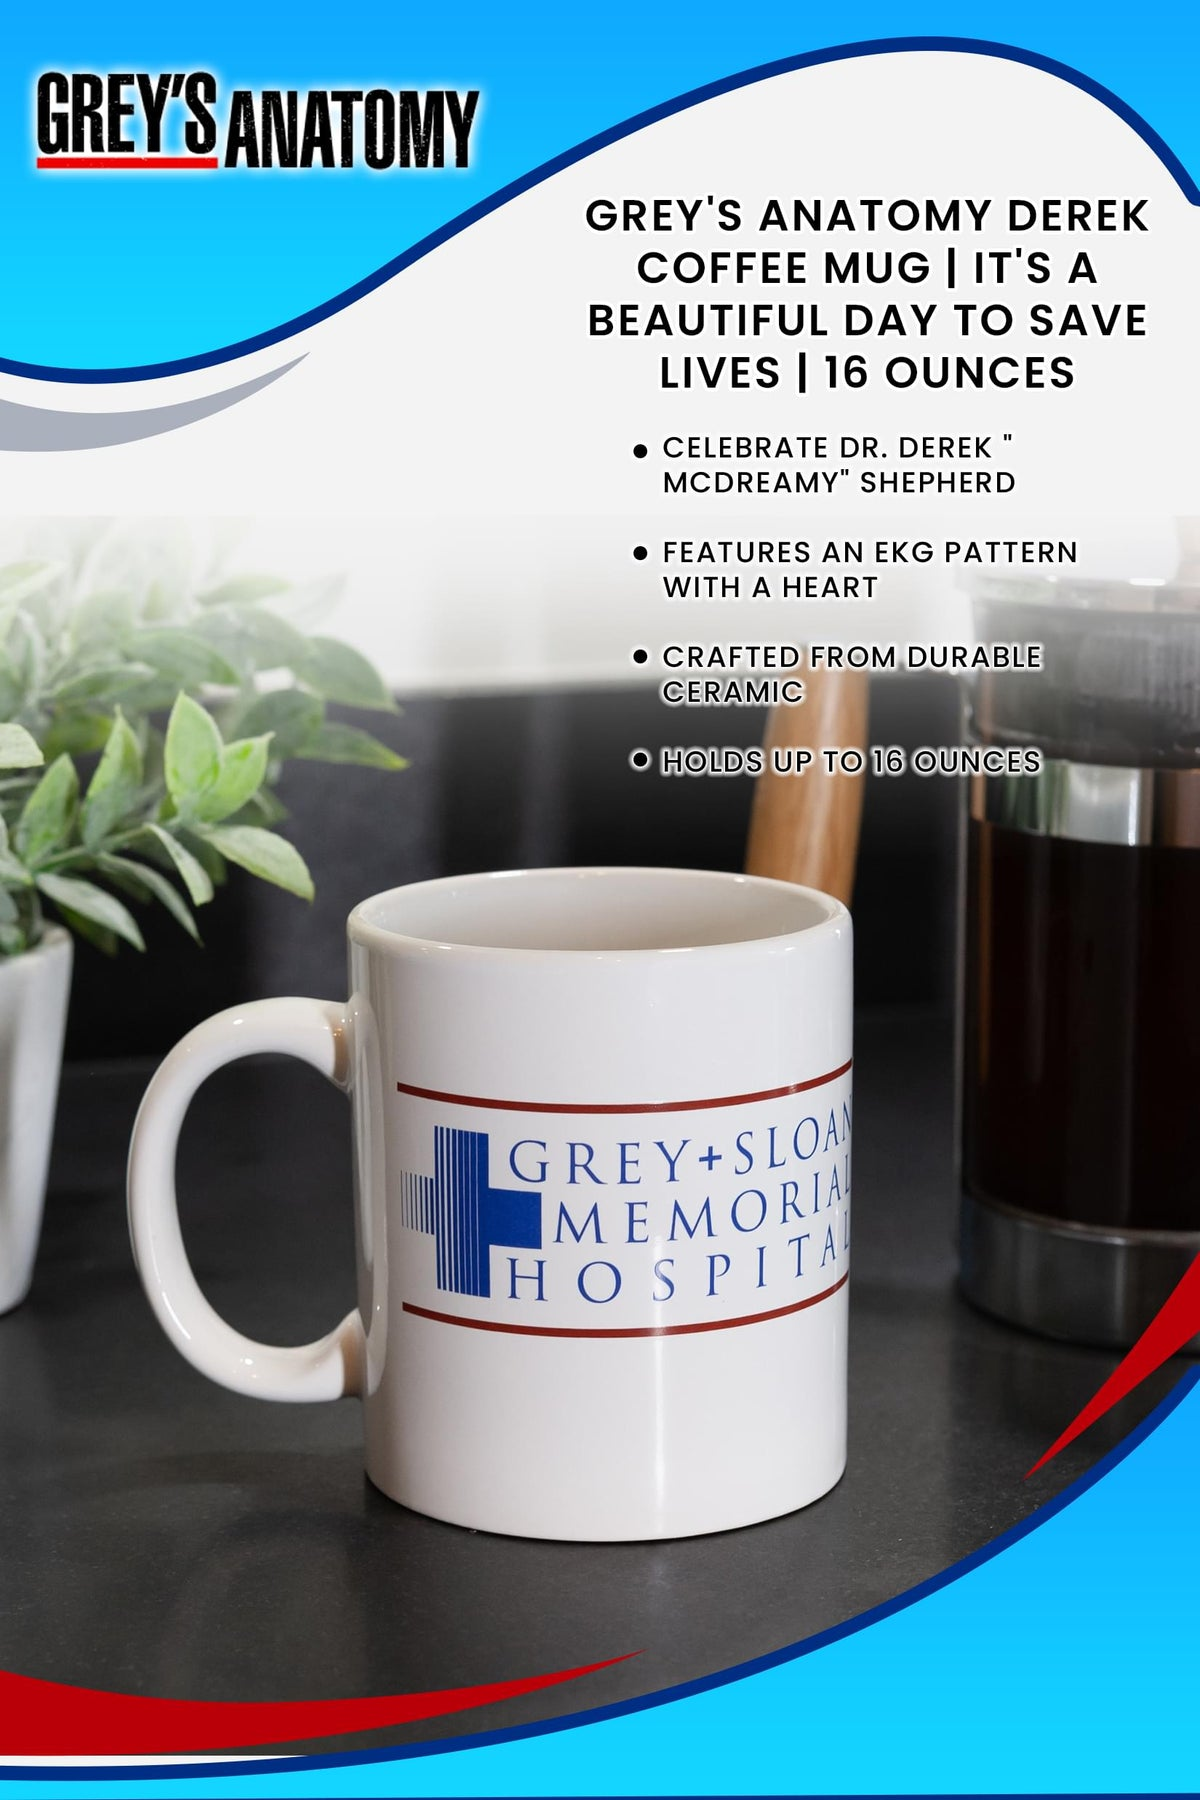 Greys Anatomy Derek Coffee Mug | It's A Beautiful Day To Save Lives | 16 Ounces